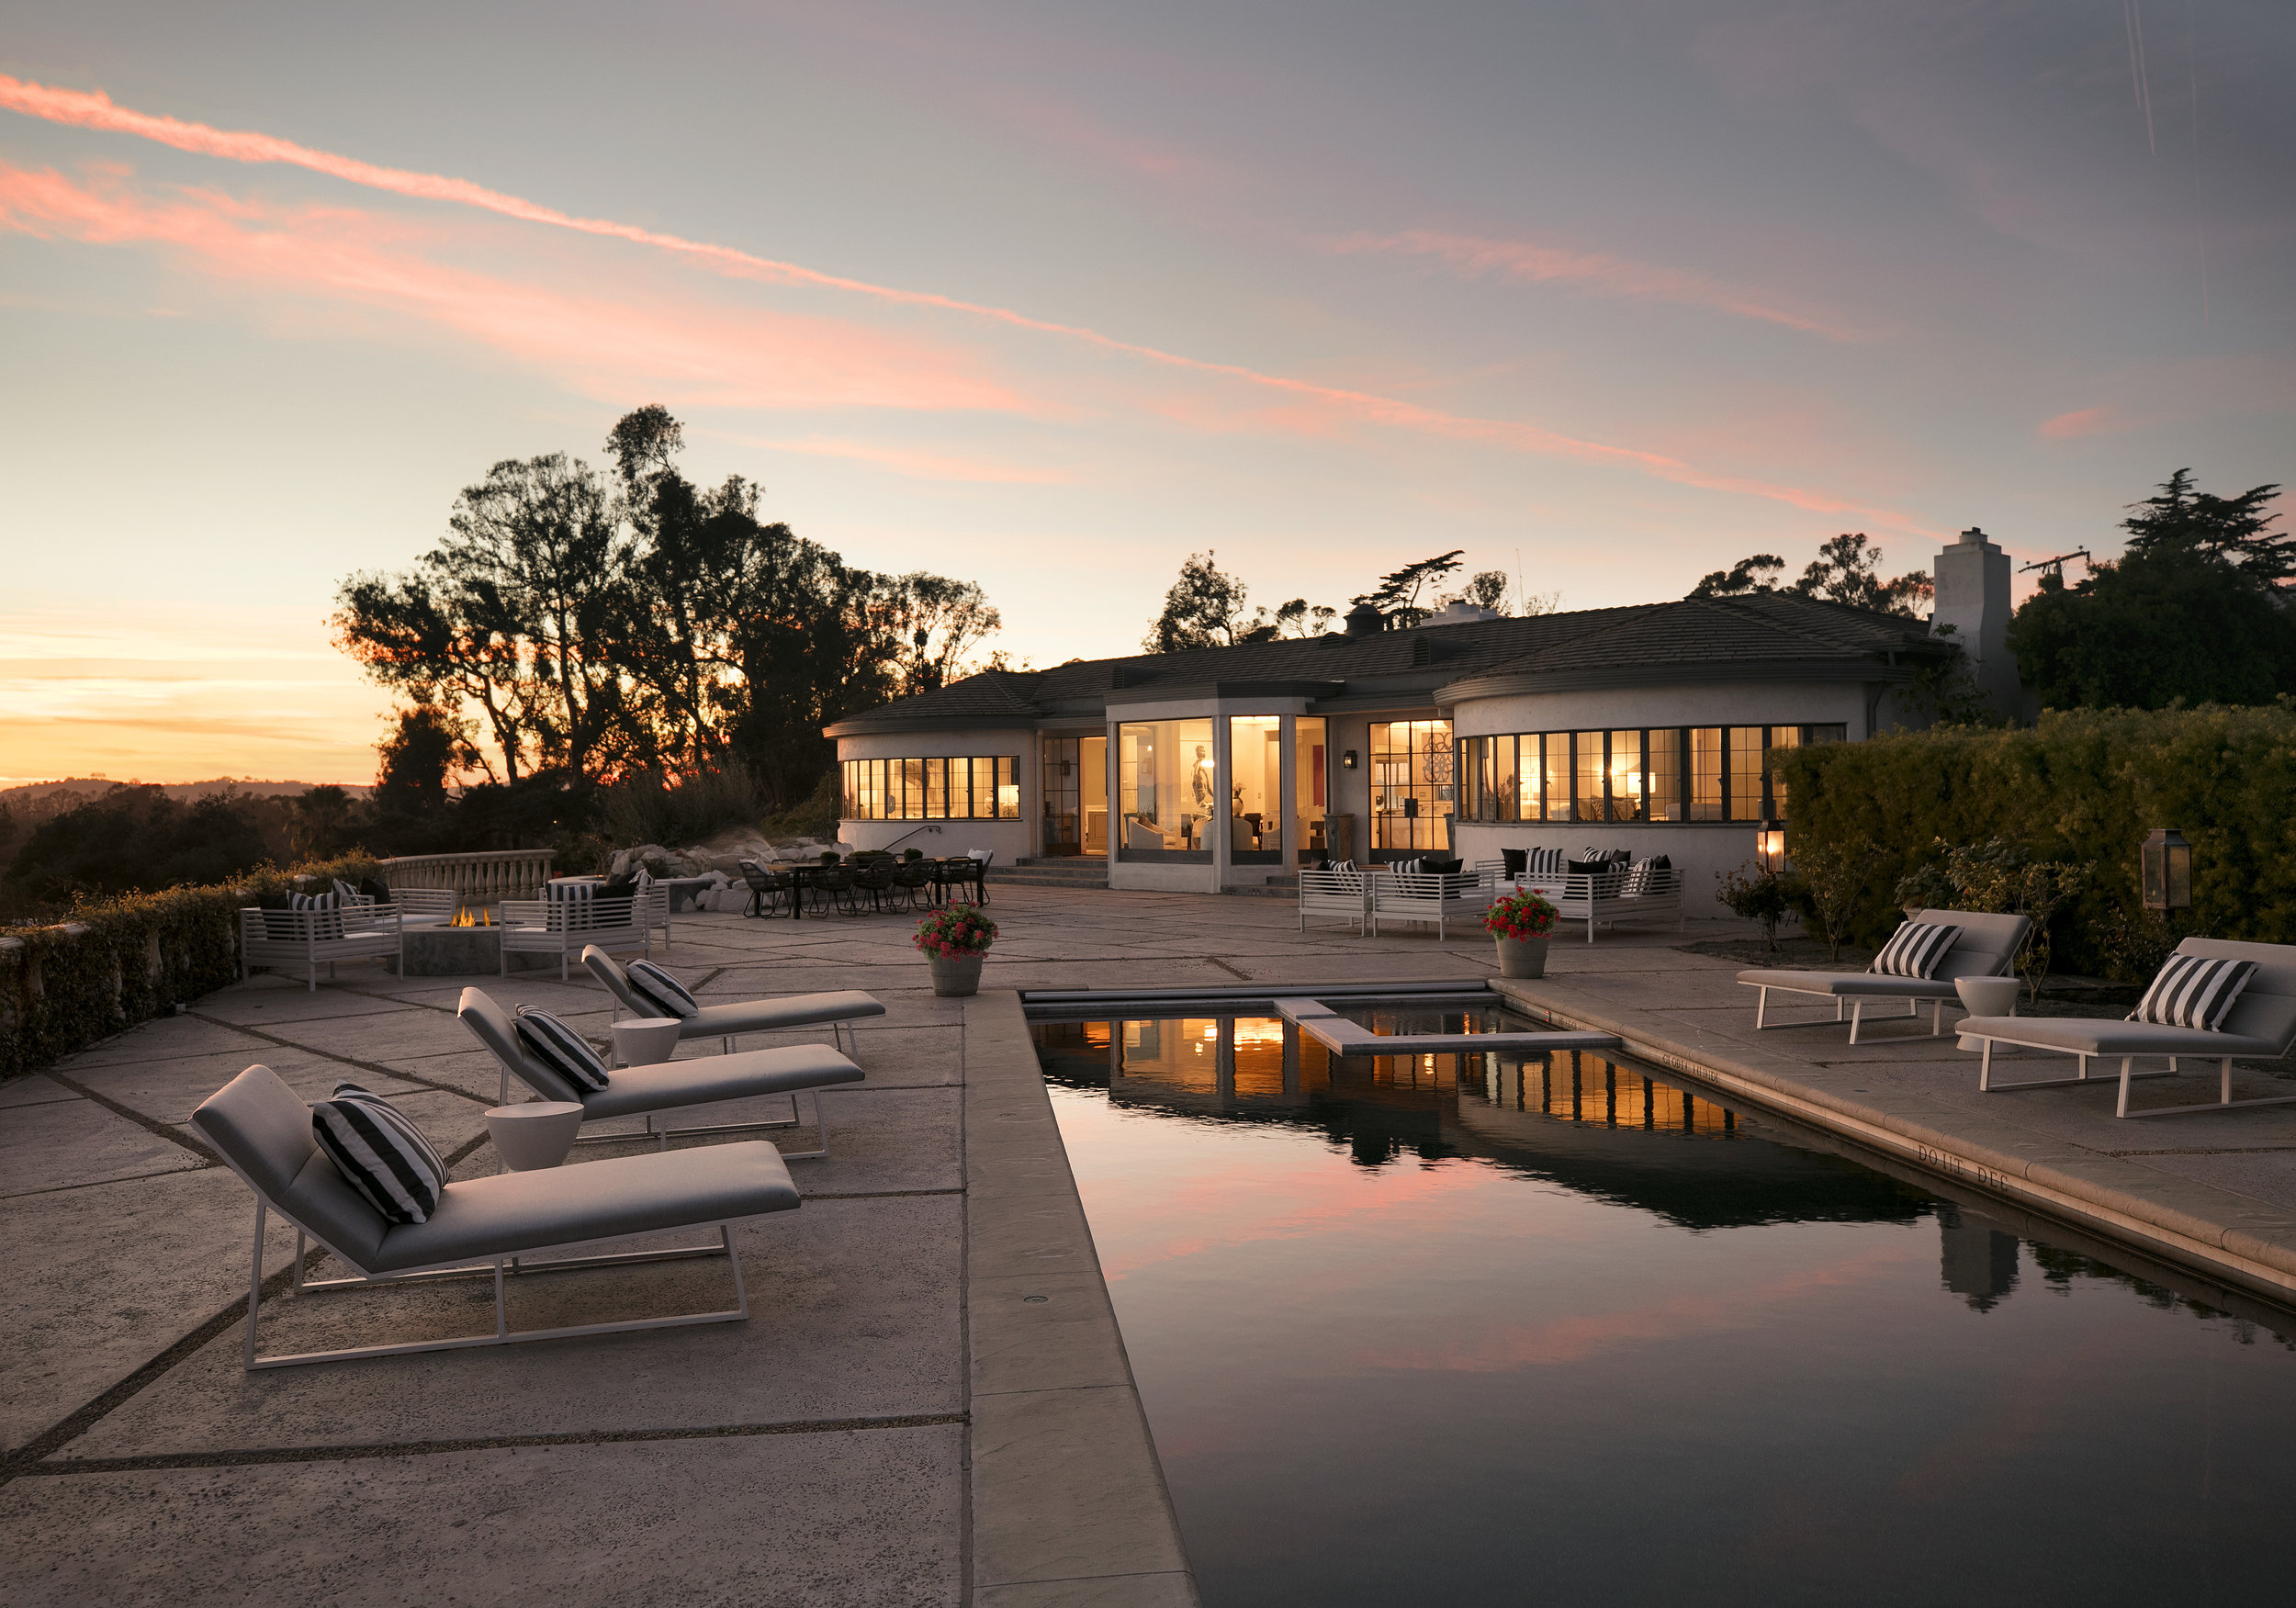 136 Middle Road, Montecito - click here to learn more